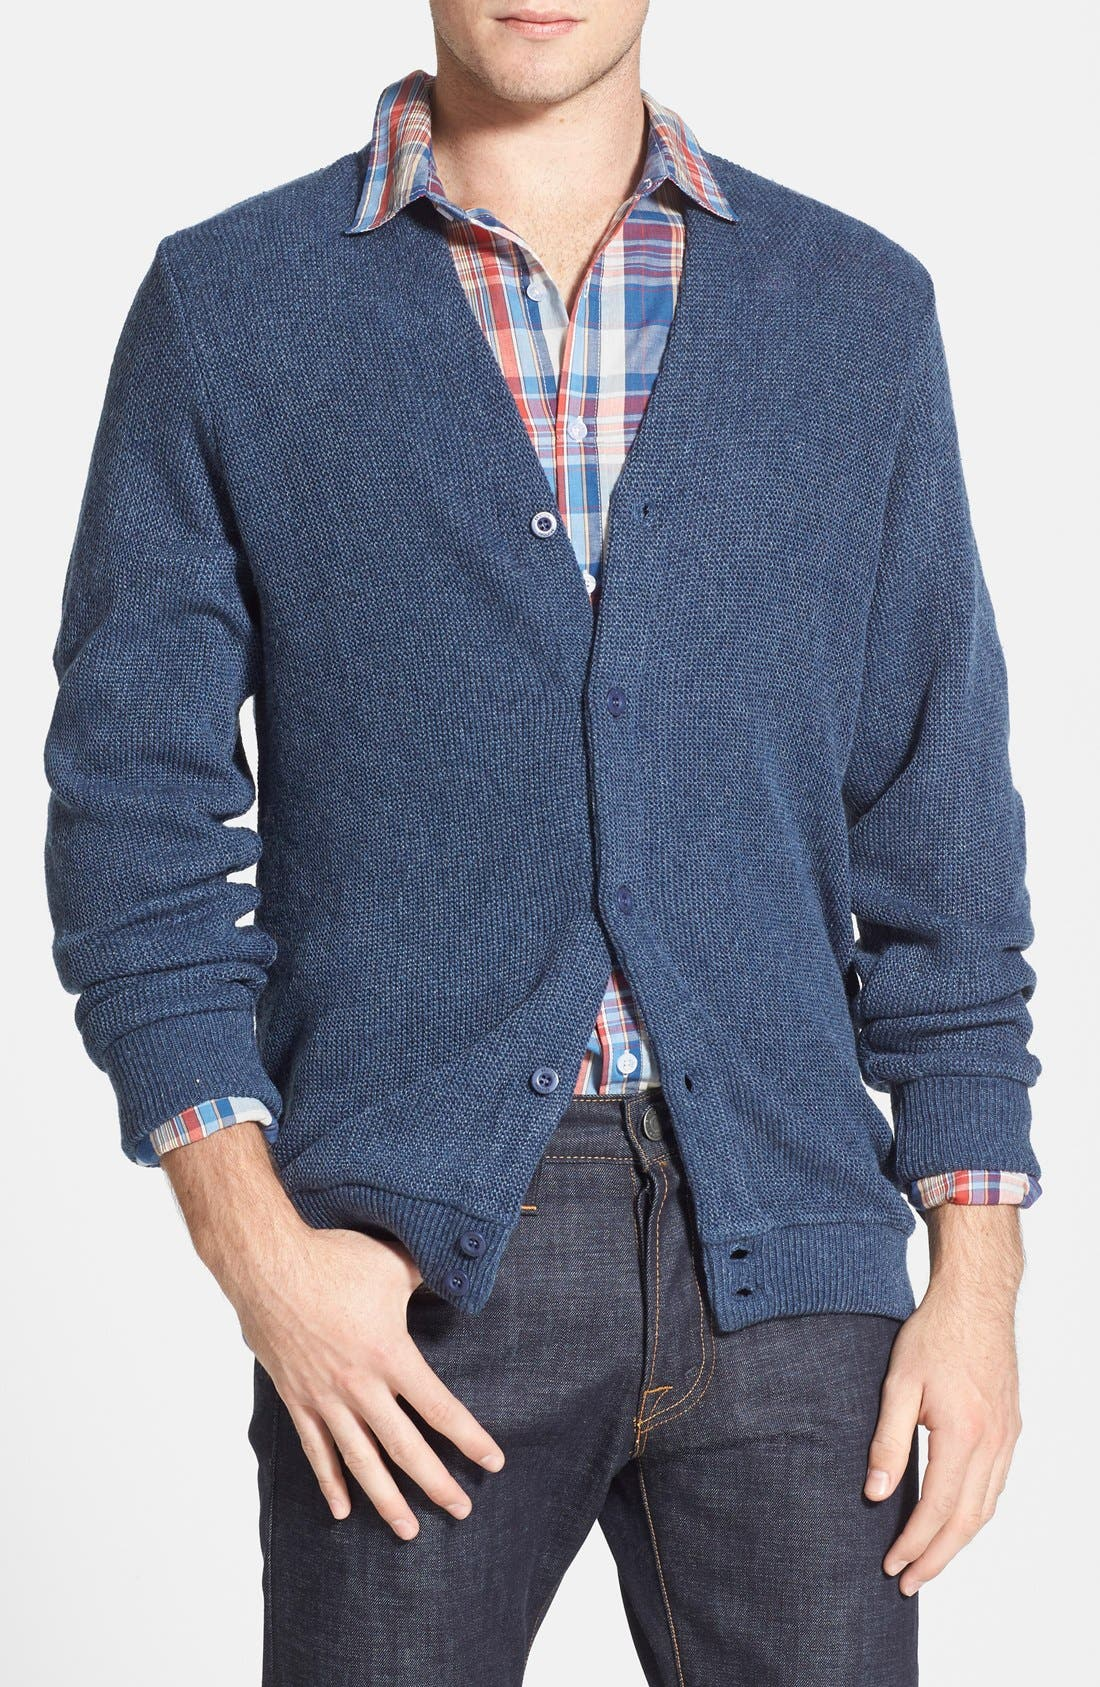 BRIXTON 'Miles' Cardigan Sweater, Main, color, 468